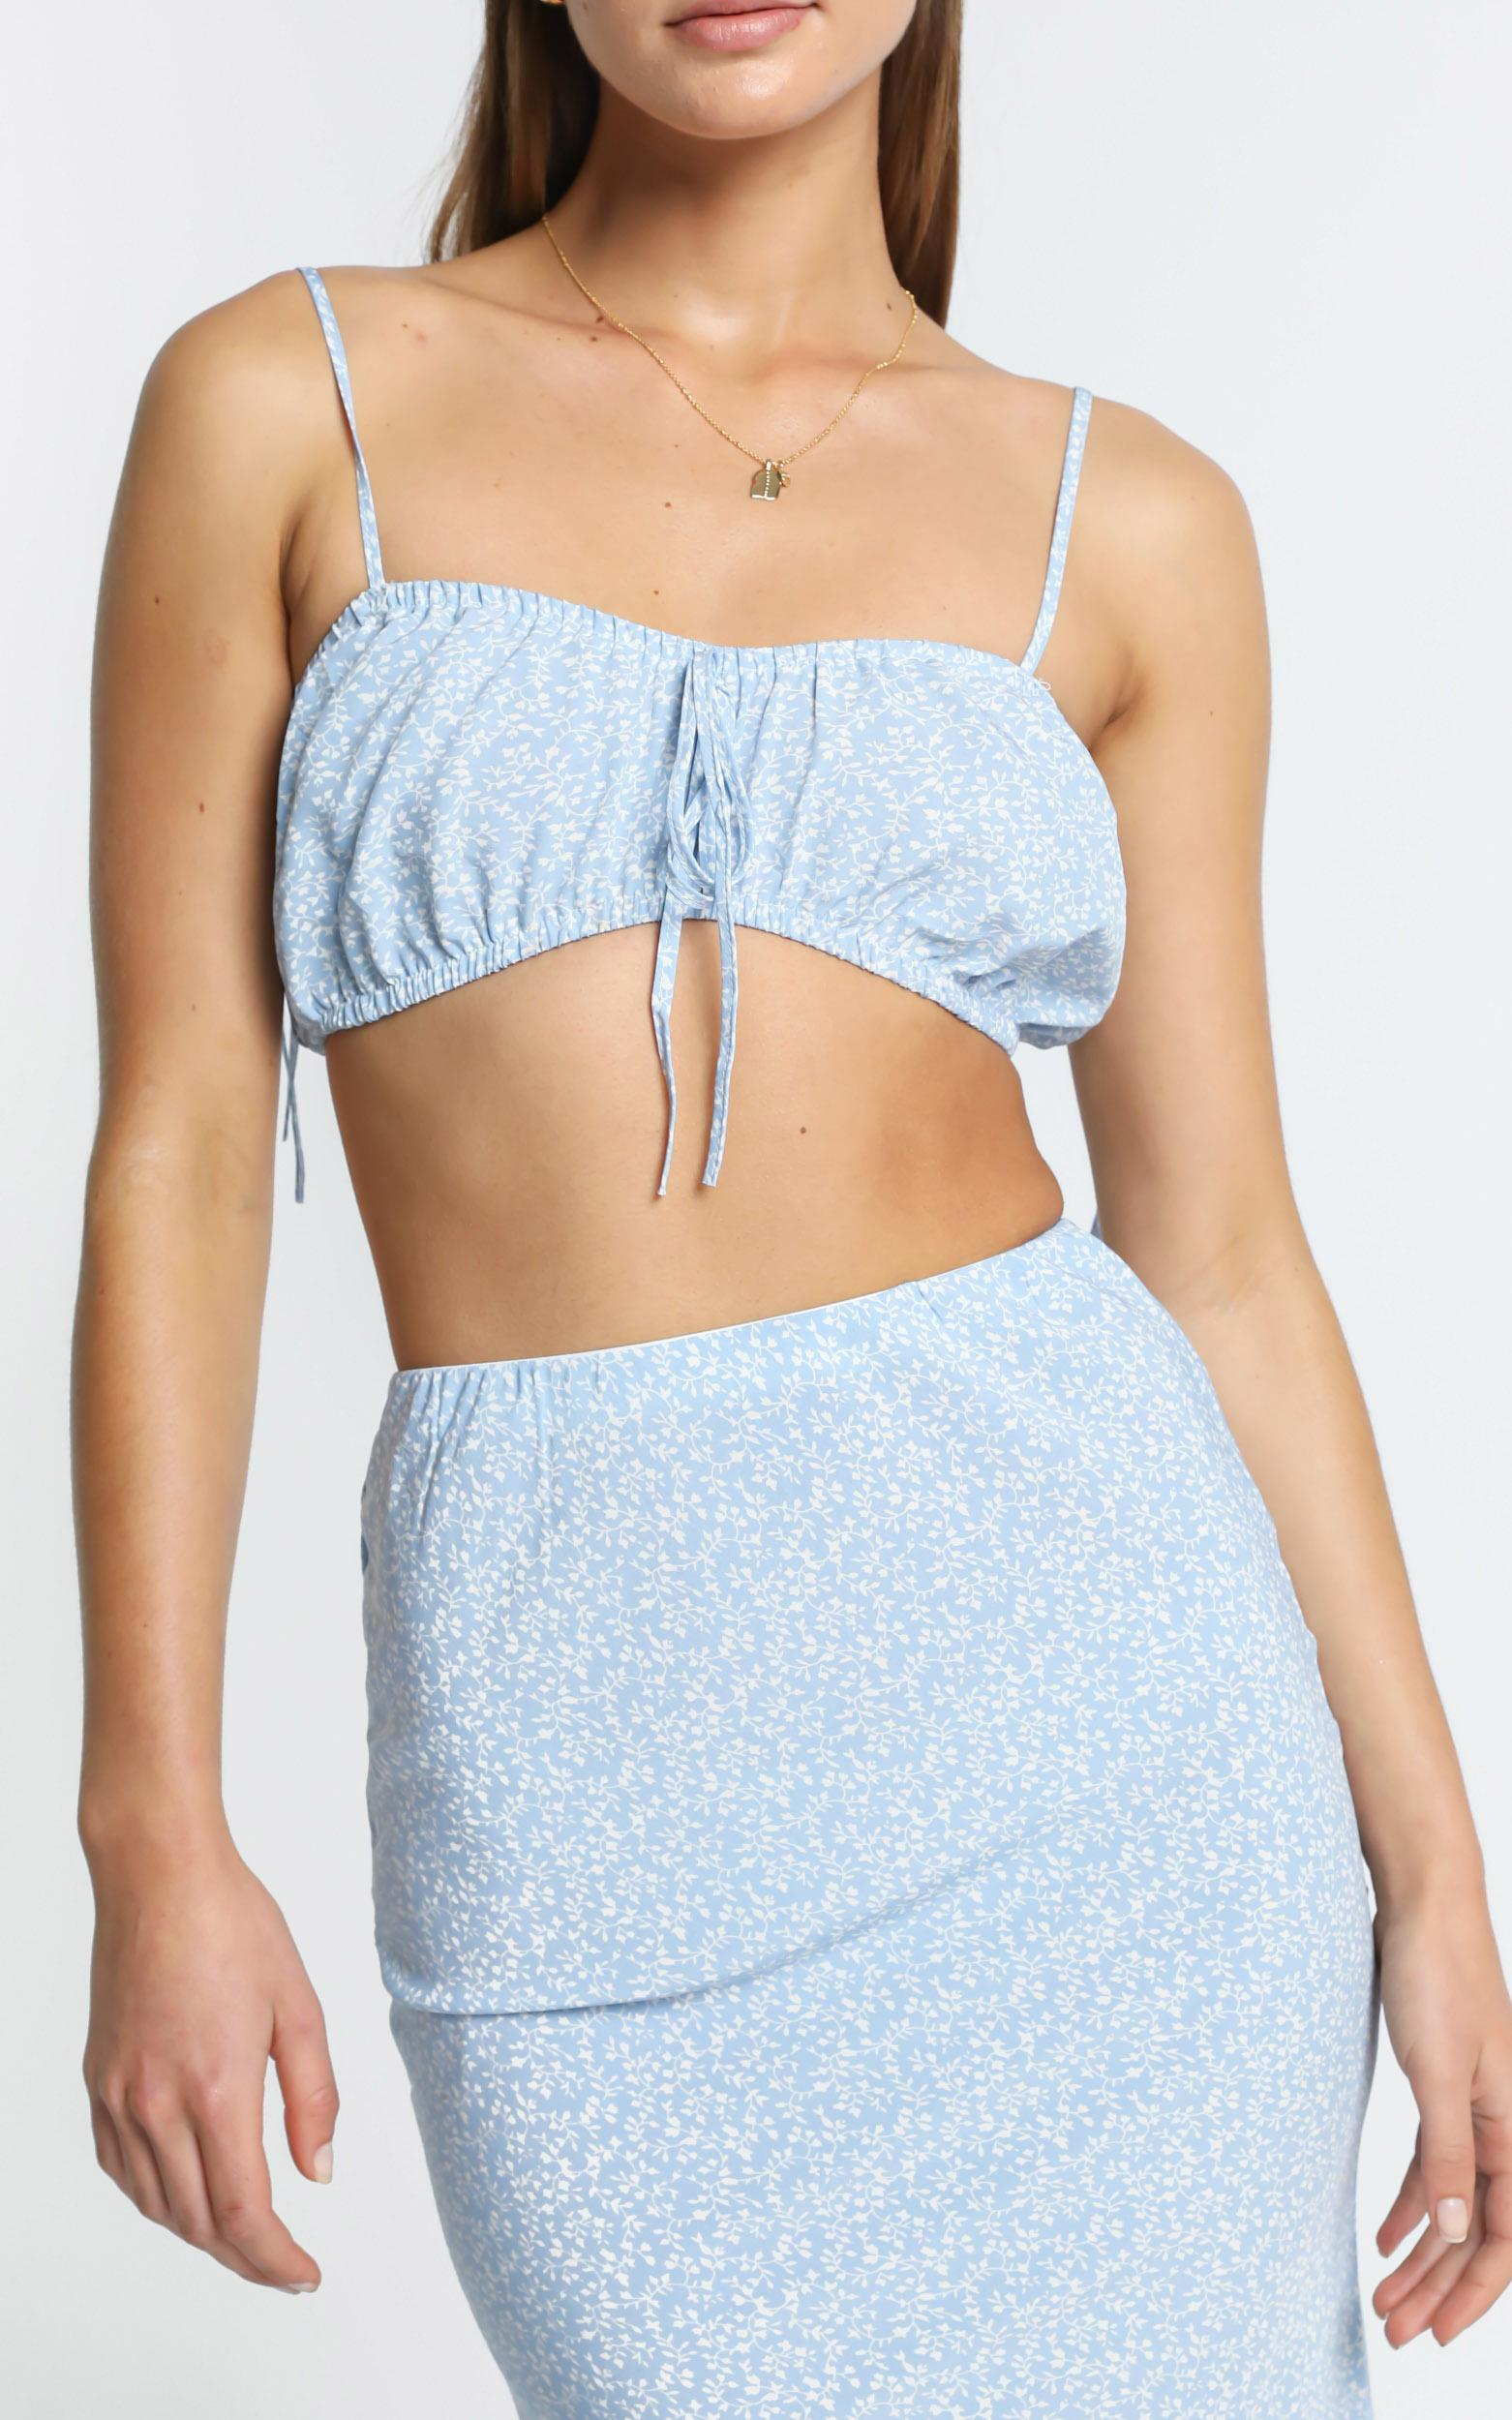 Bodhi Two Piece set in Blue Floral - 6 (XS), Blue, hi-res image number null